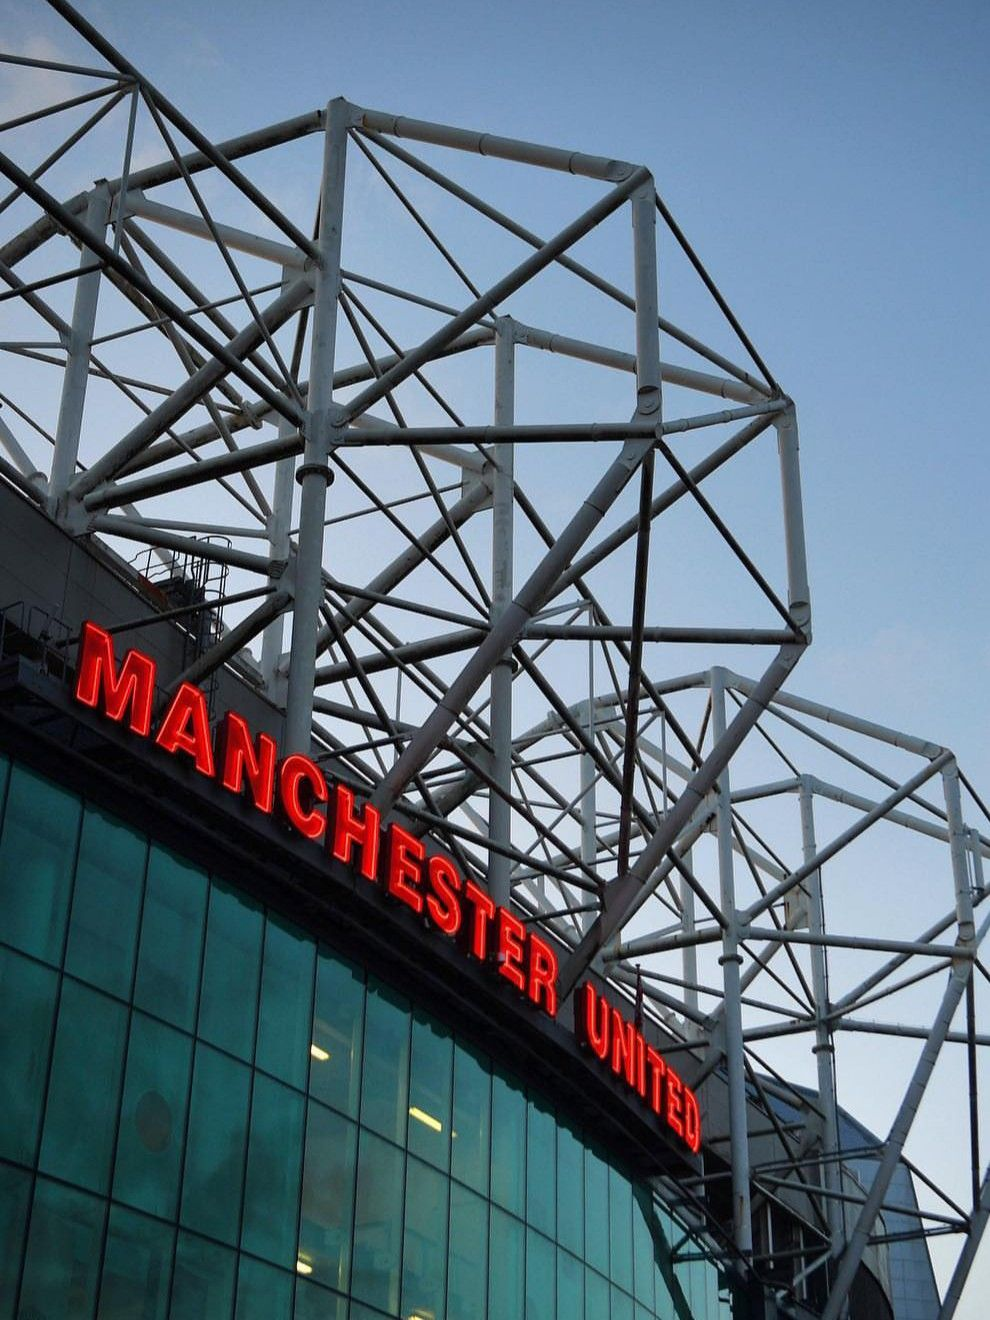 Get Best Manchester United Wallpapers Squad